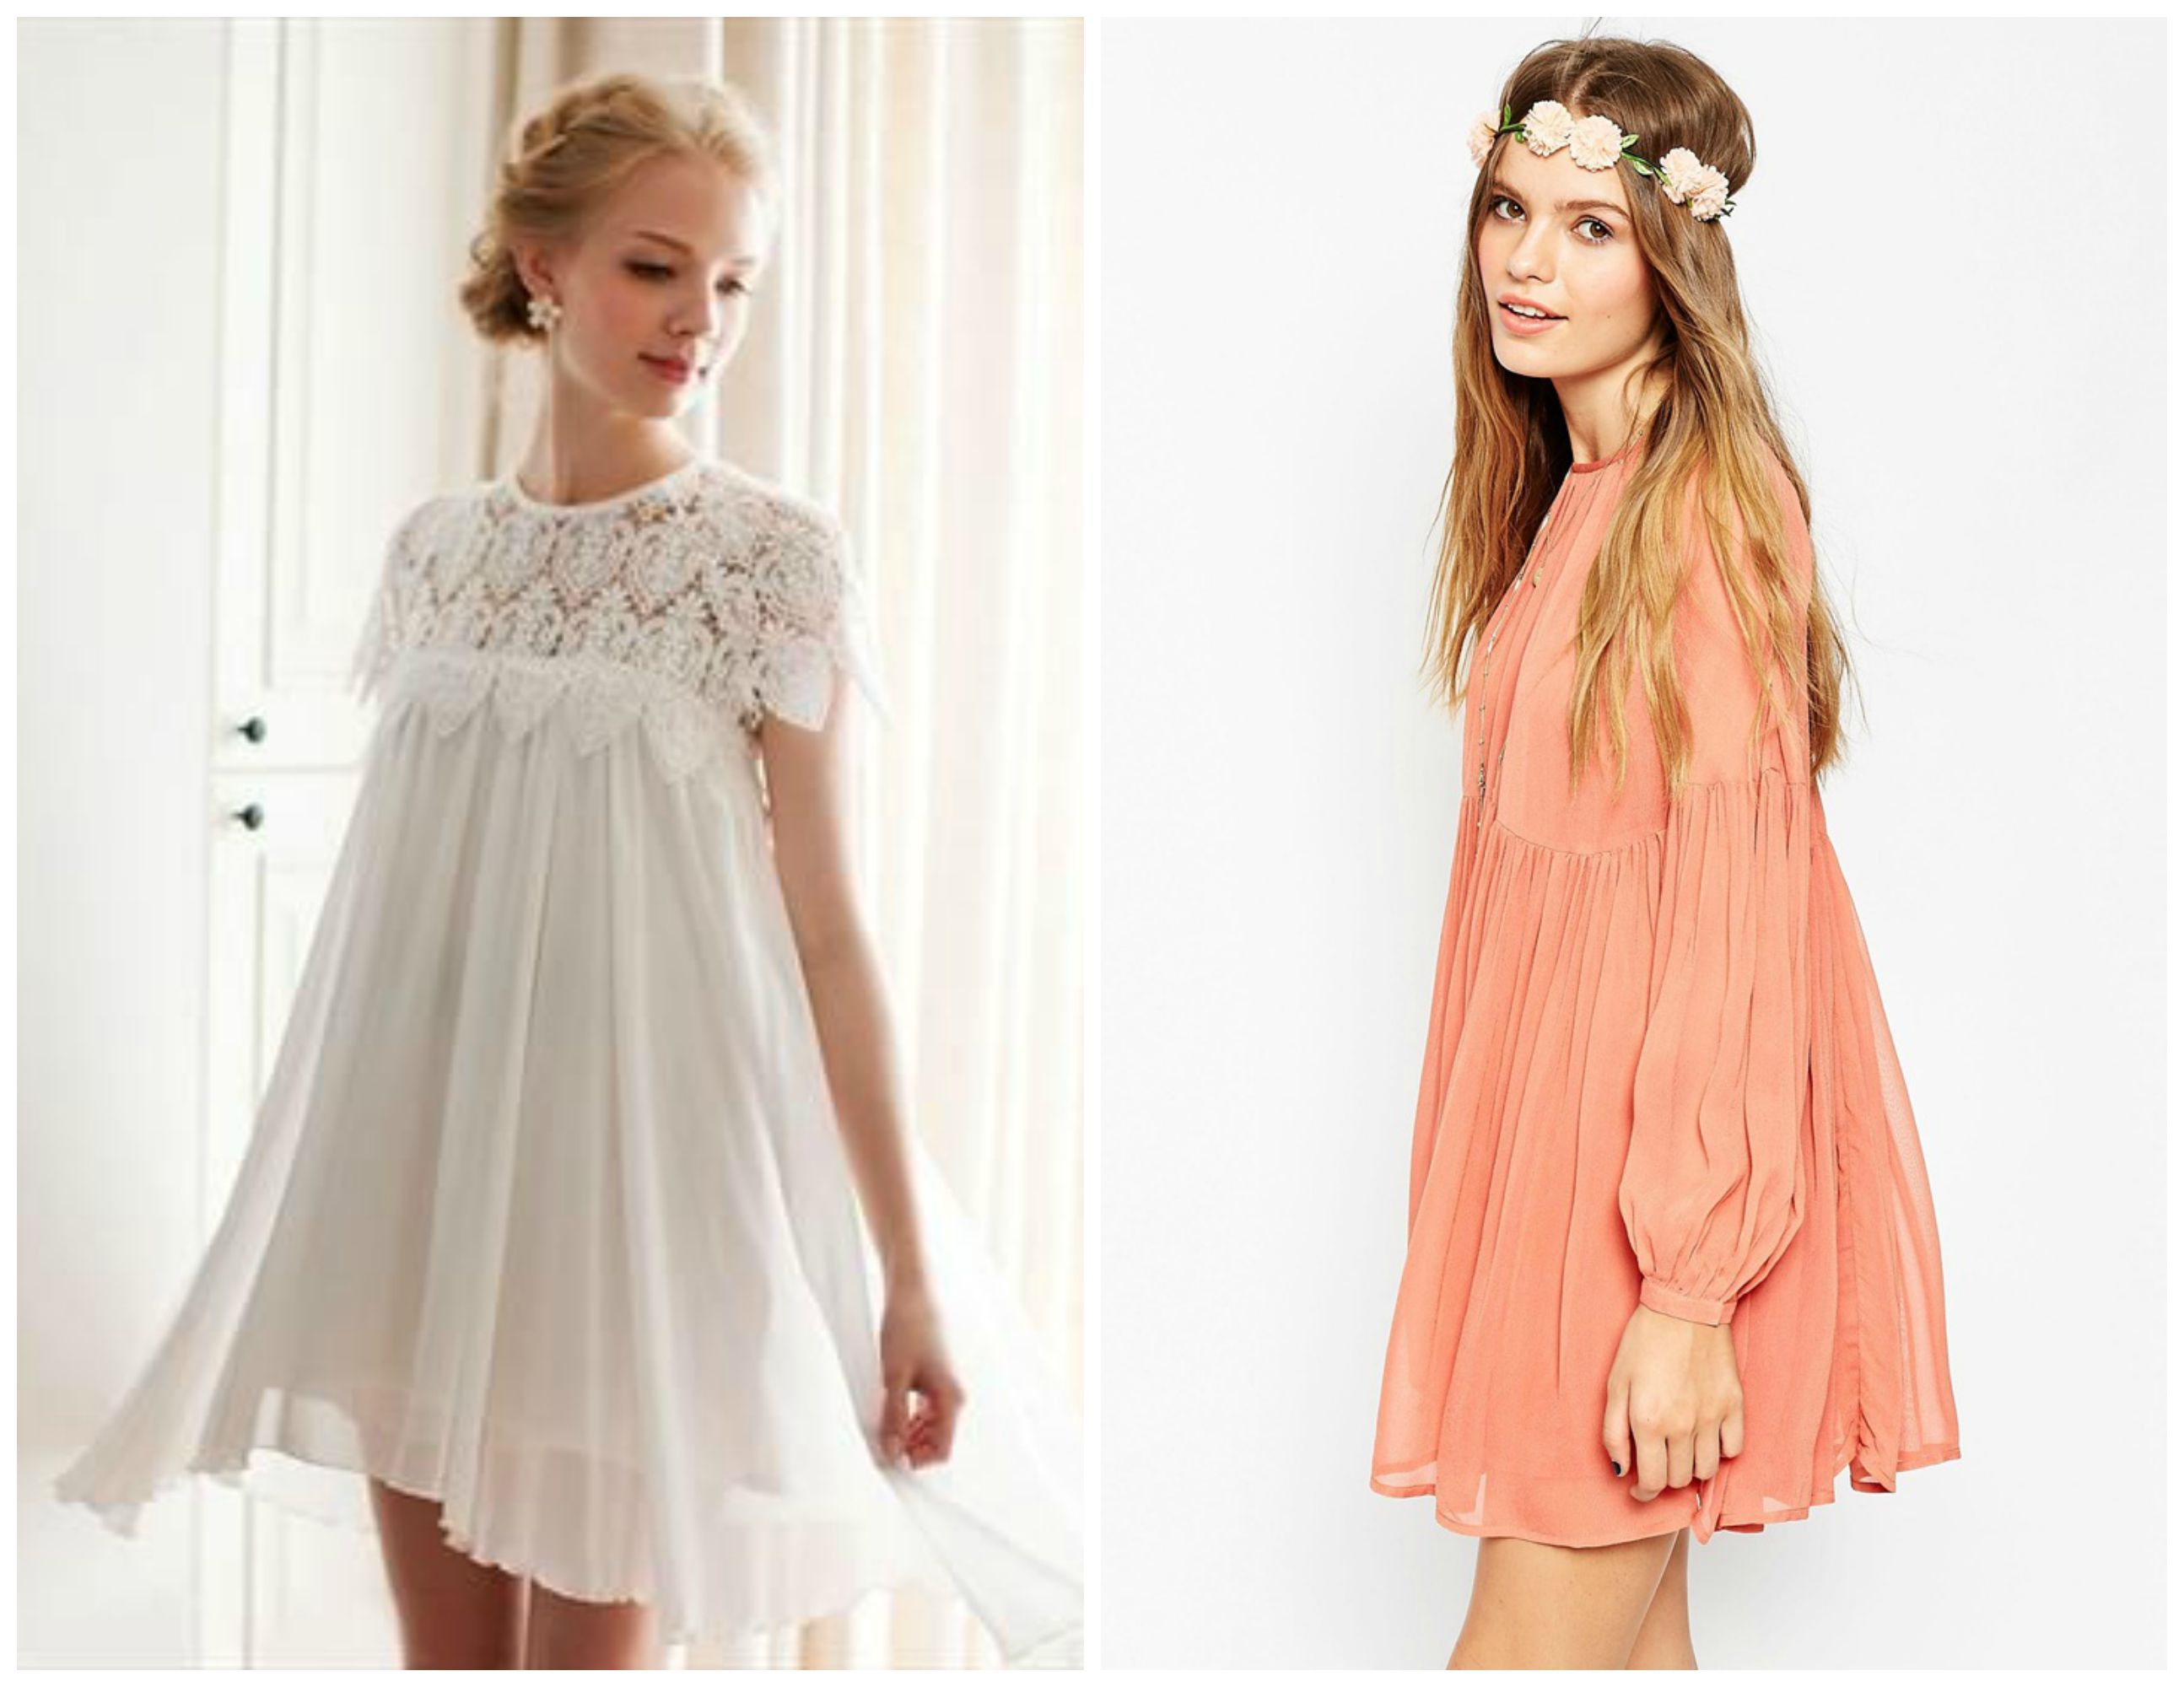 How To Wear The Babydoll Bridesmaid Dress | Pinterest | Ethereal ...